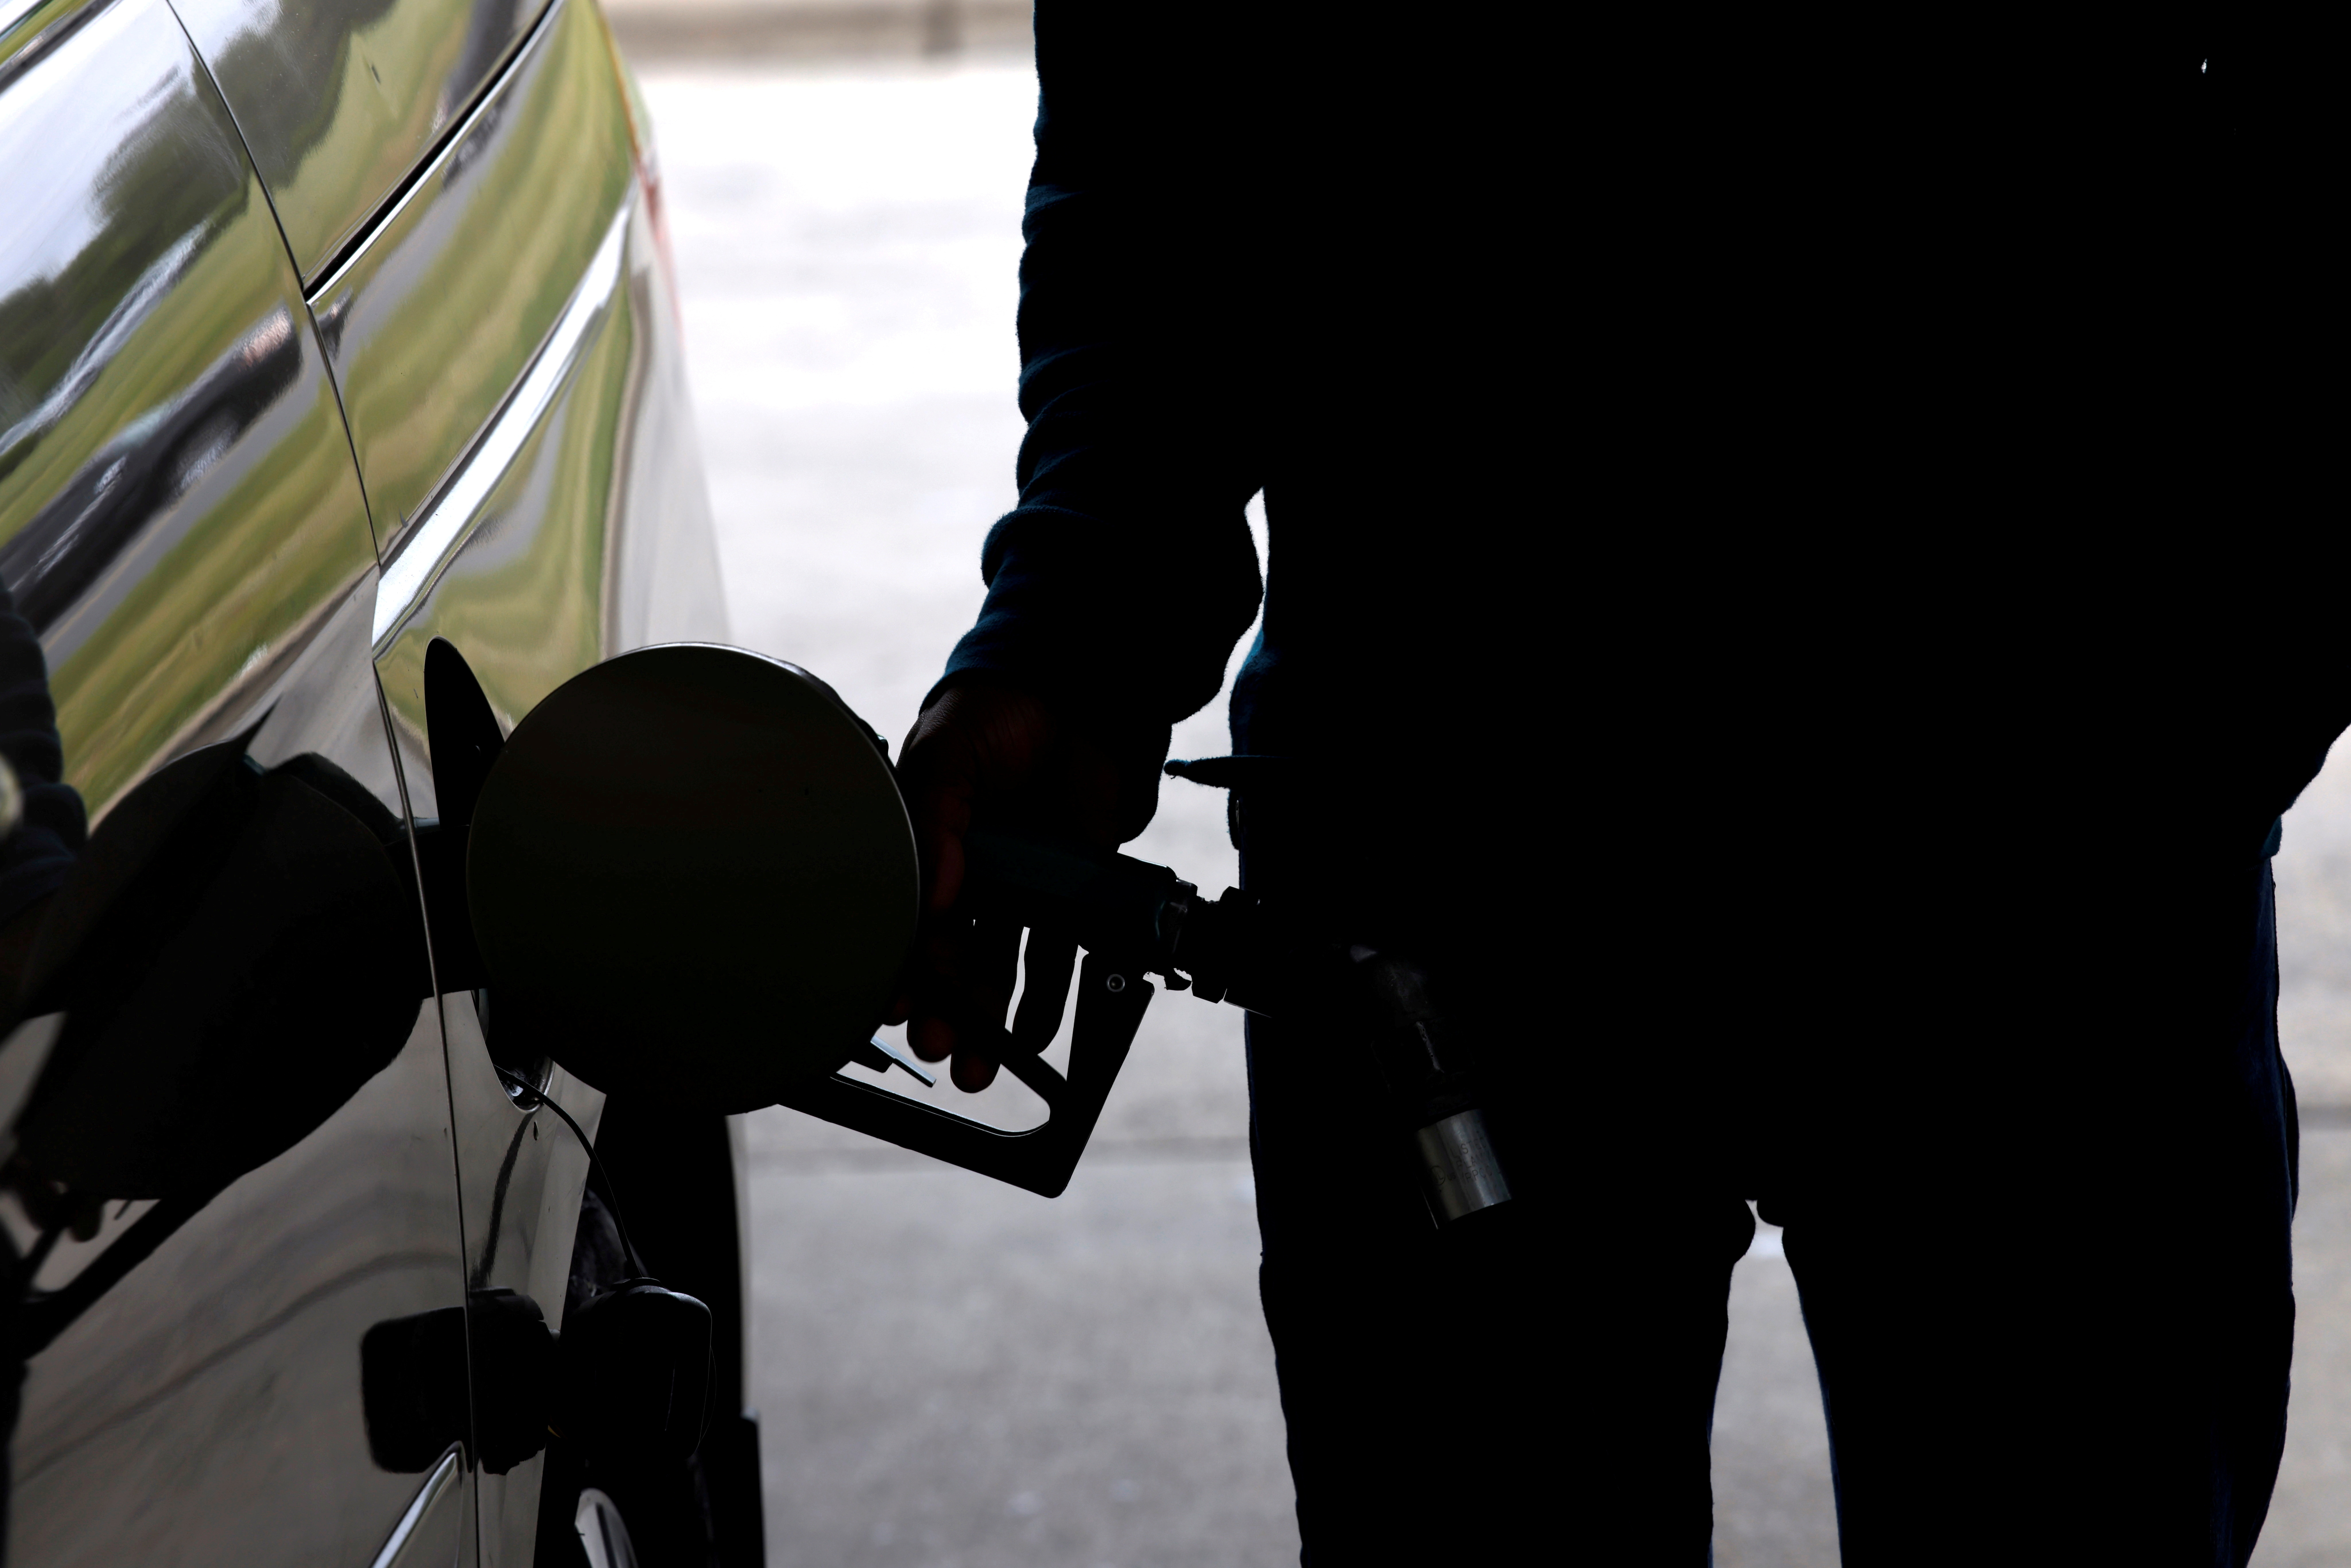 A motorist tops up the fuel in his car's gas tank after a lengthy wait to enter a gasoline station during a surge in the demand for fuel following the cyberattack that crippled the Colonial Pipeline, in Durham, North Carolina, U.S. May 12, 2021.  REUTERS/Jonathan Drake//File Photo